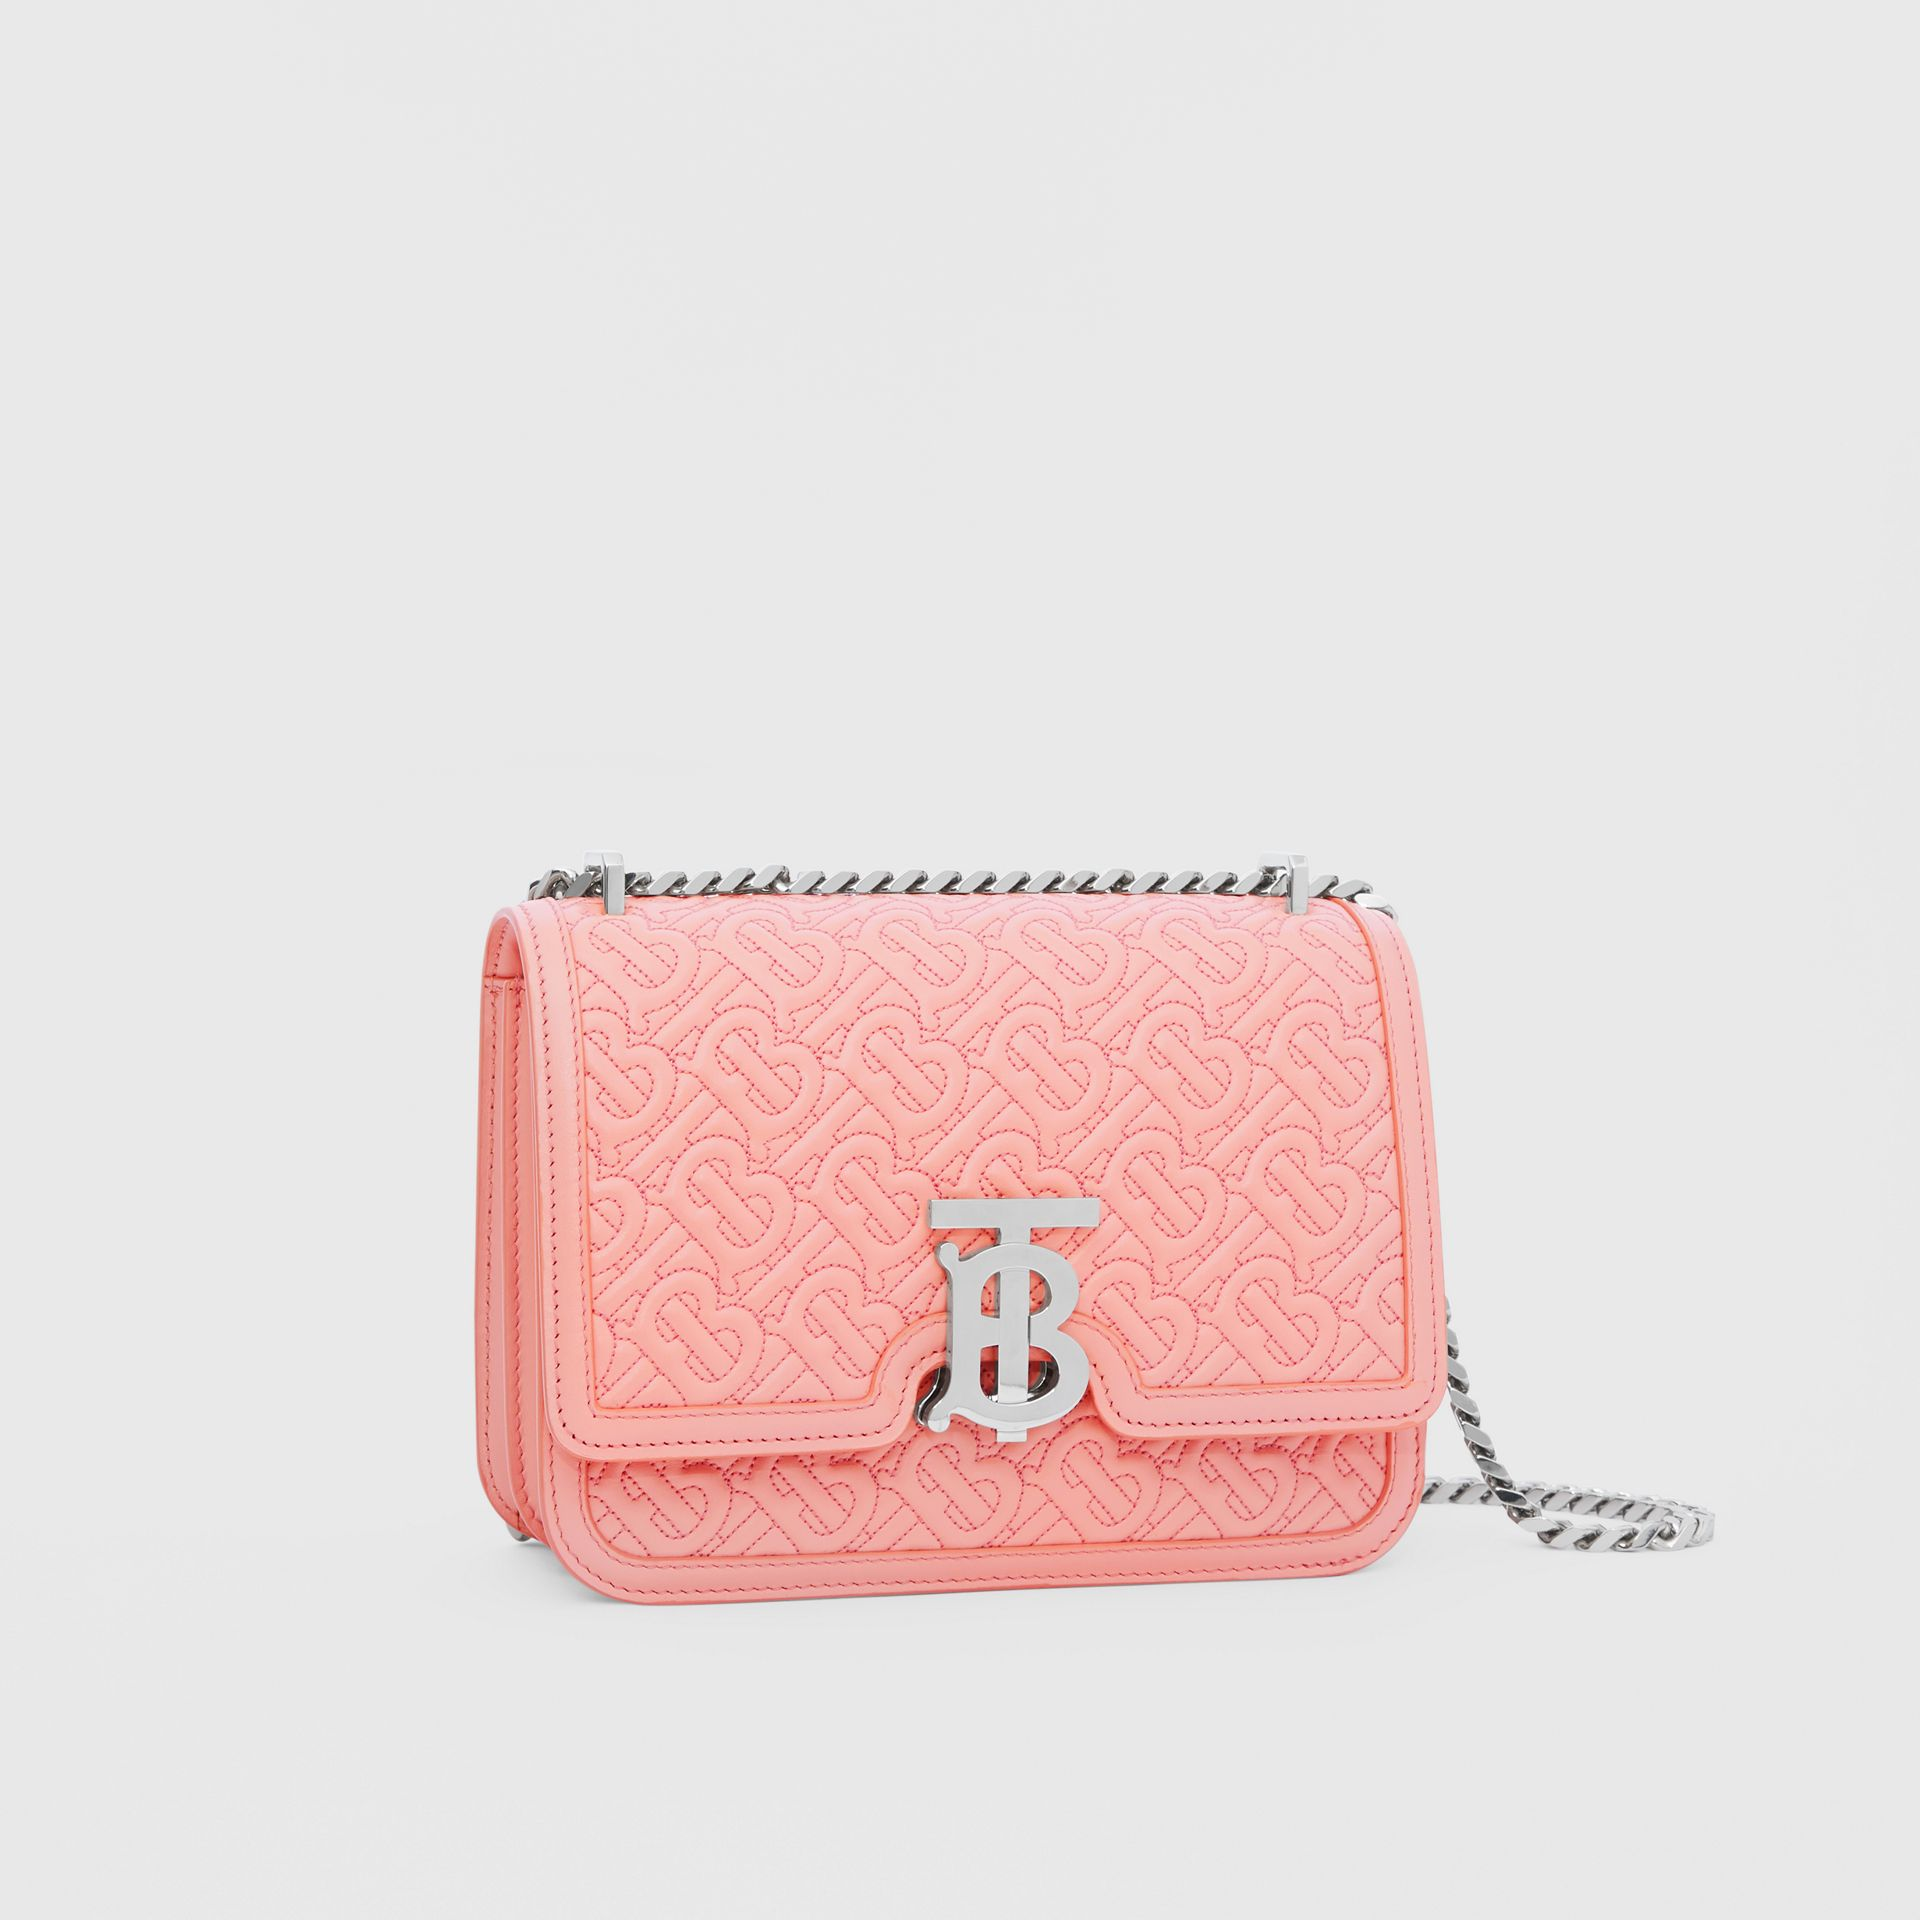 Small Quilted Monogram Lambskin TB Bag in Blush Pink - Women | Burberry - gallery image 6